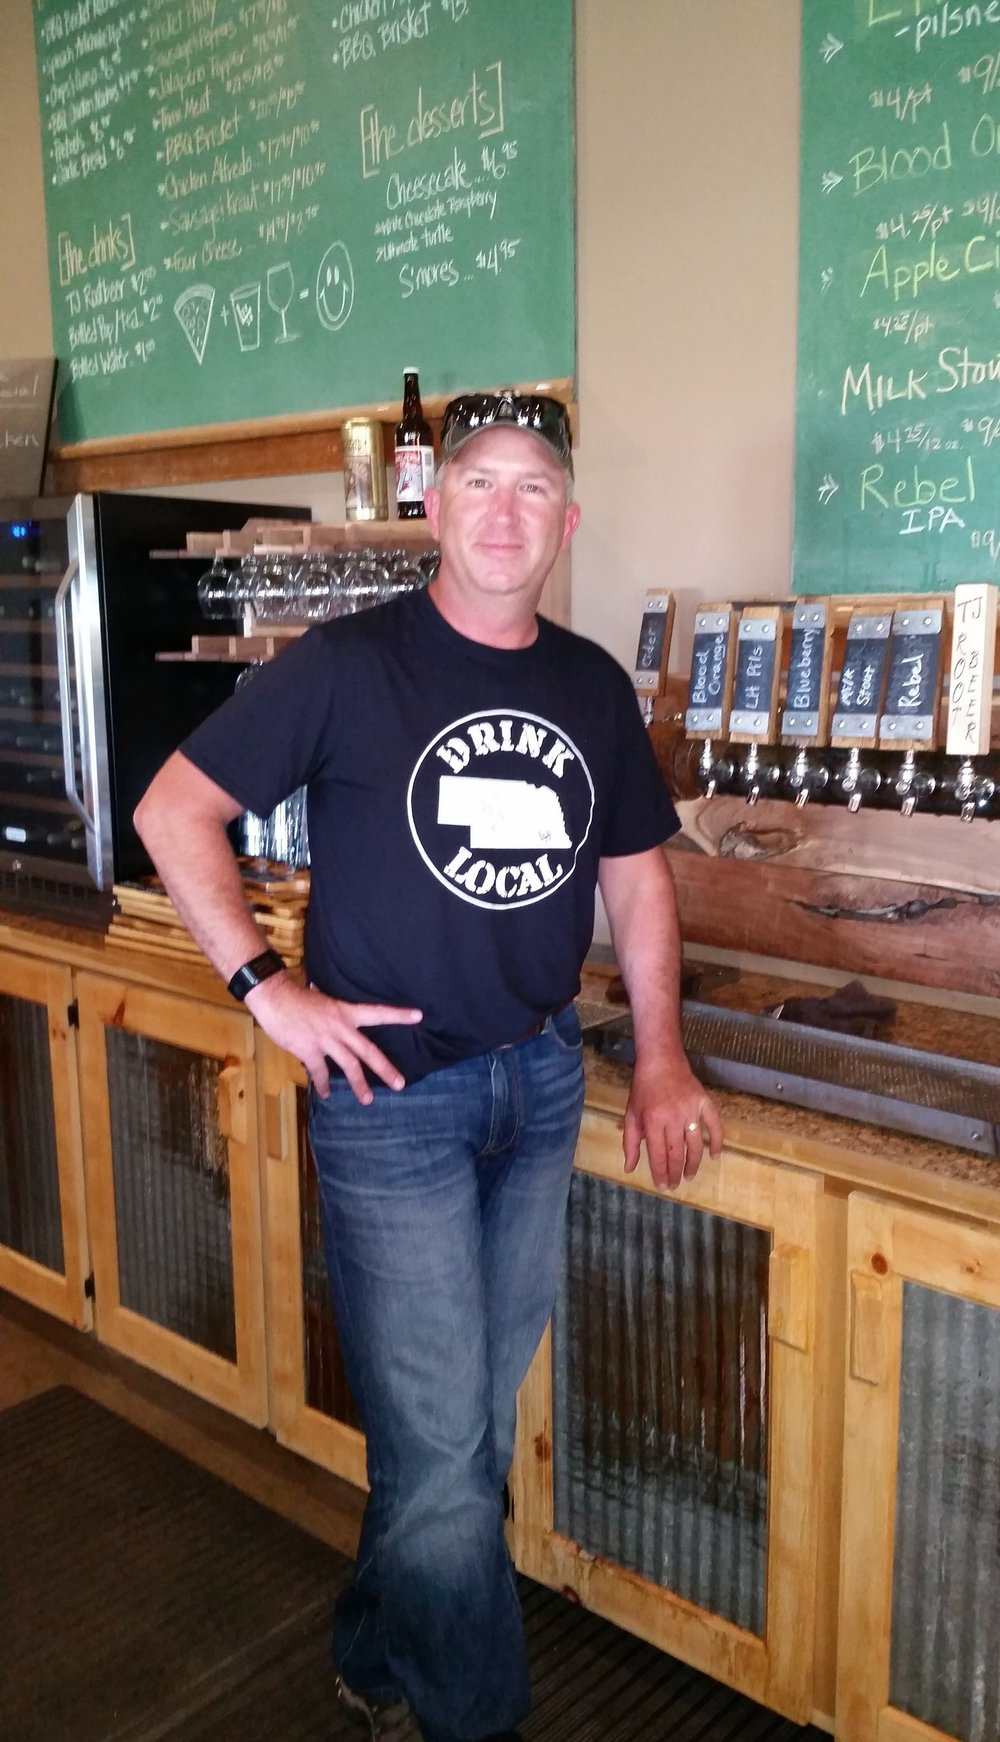 Jim Stutzman - owner & creator of all wines and craft beers